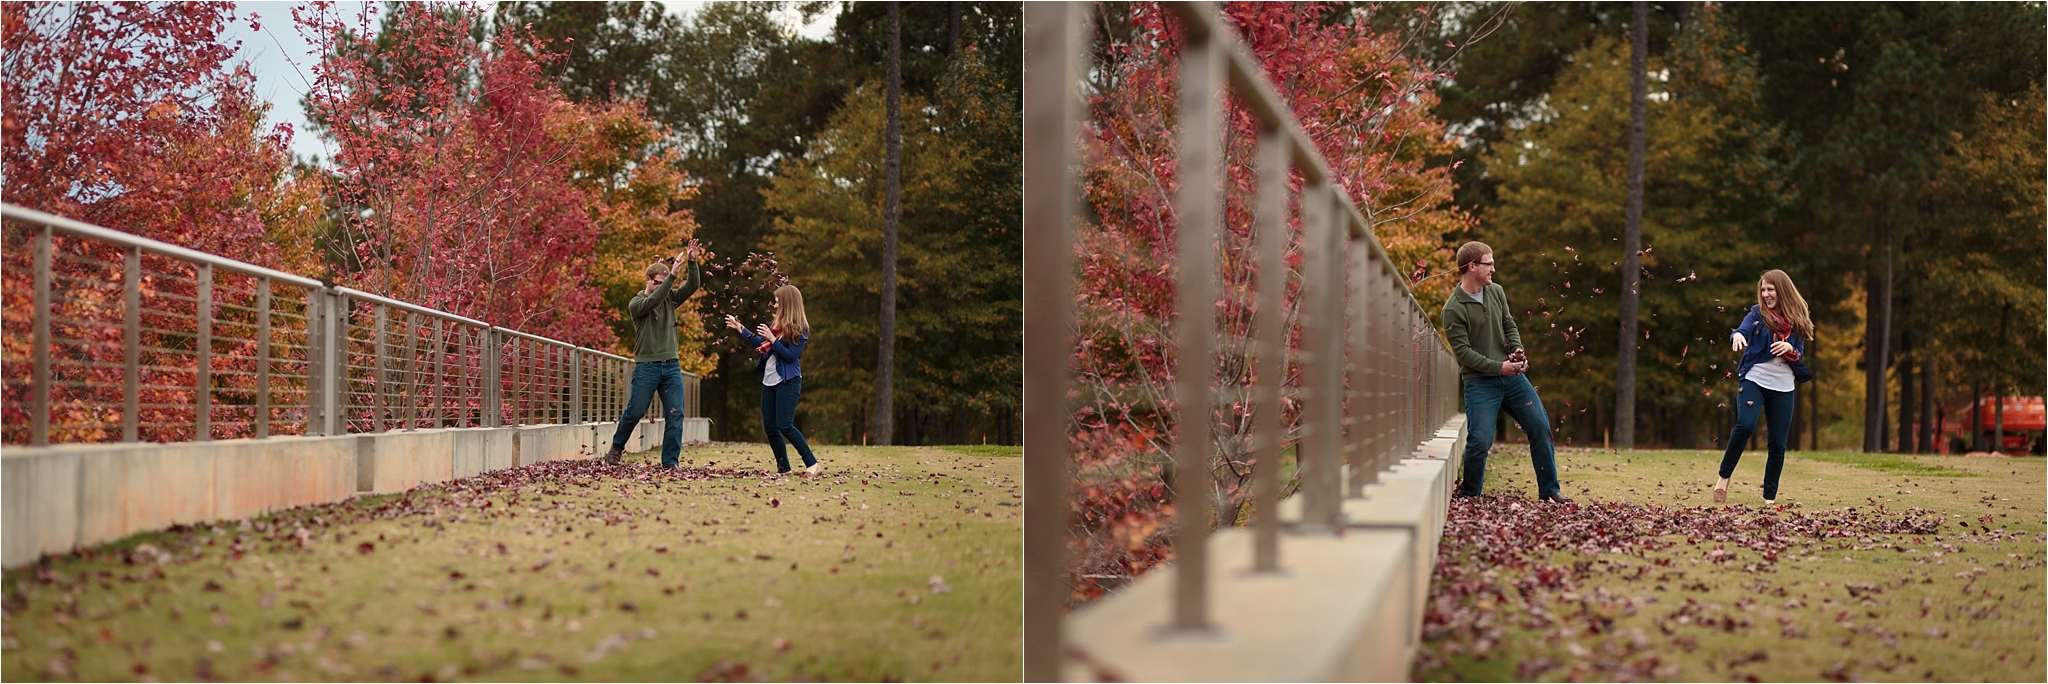 greenville-engagement-session-fall-colors-12_blog.jpg